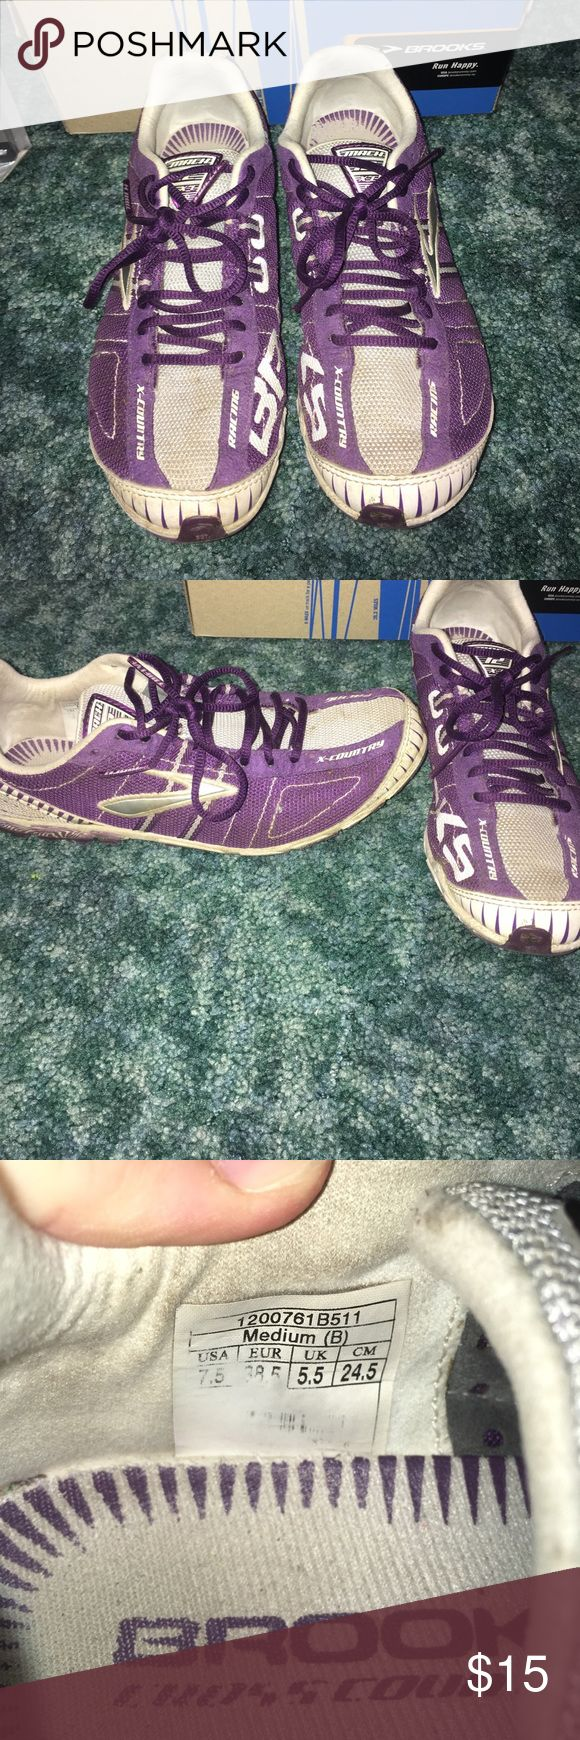 Brooks Track Shoes These are Brooks purple track shoes. They still have the metal spikes that came with them and extras. I only used them for half a season in middle school track. Size: 7.5 Still in amazing condition and the bottoms aren't even worn out. Still in original box. Brooks Shoes Athletic Shoes